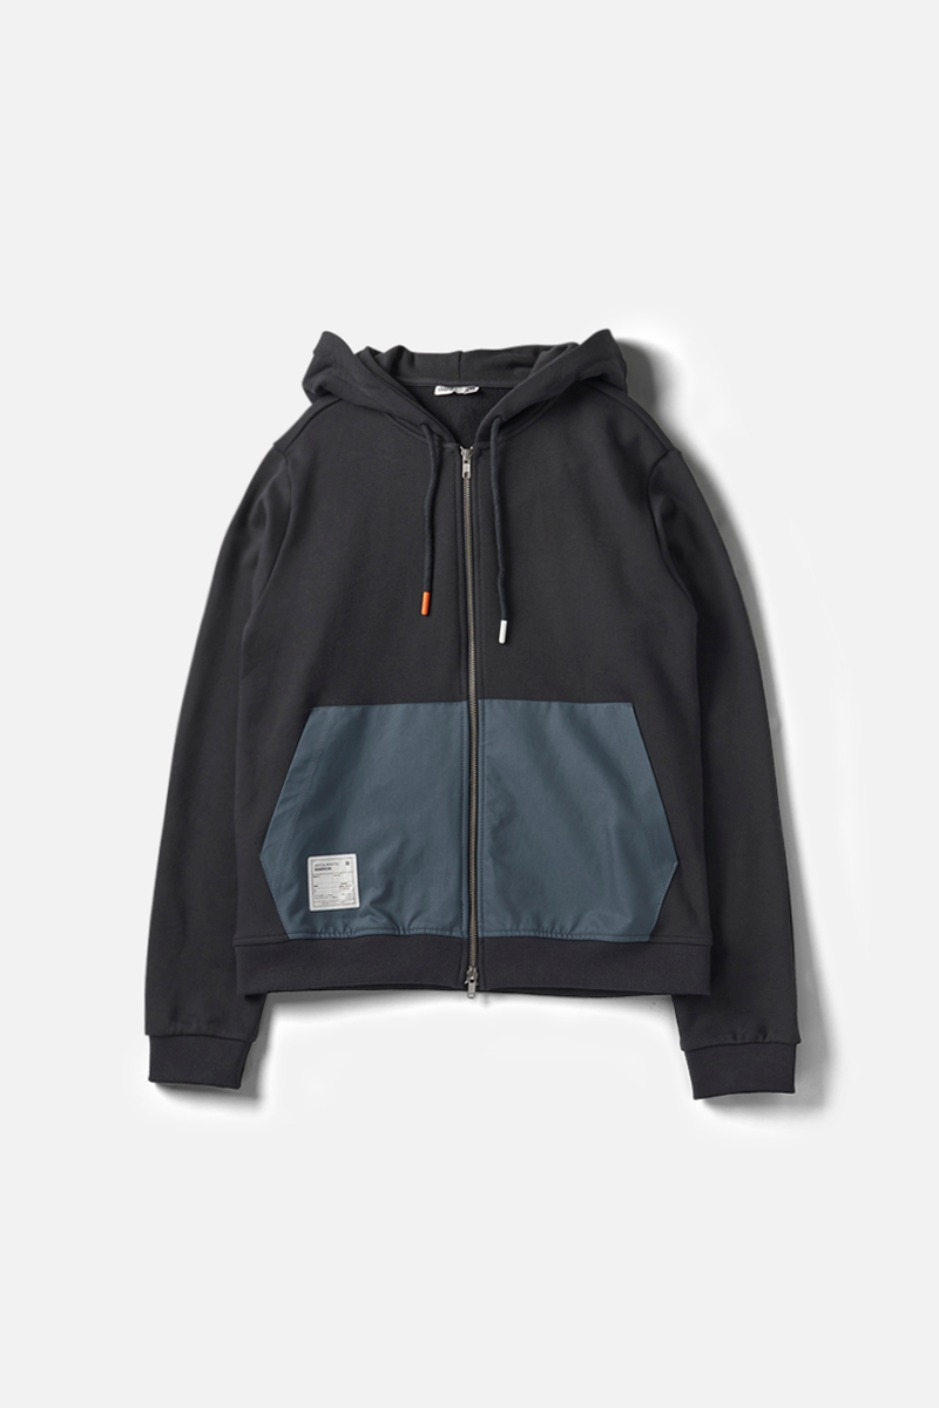 RAWROW X AECA WHITE HOODIE ZIP-UP-CHARCOAL